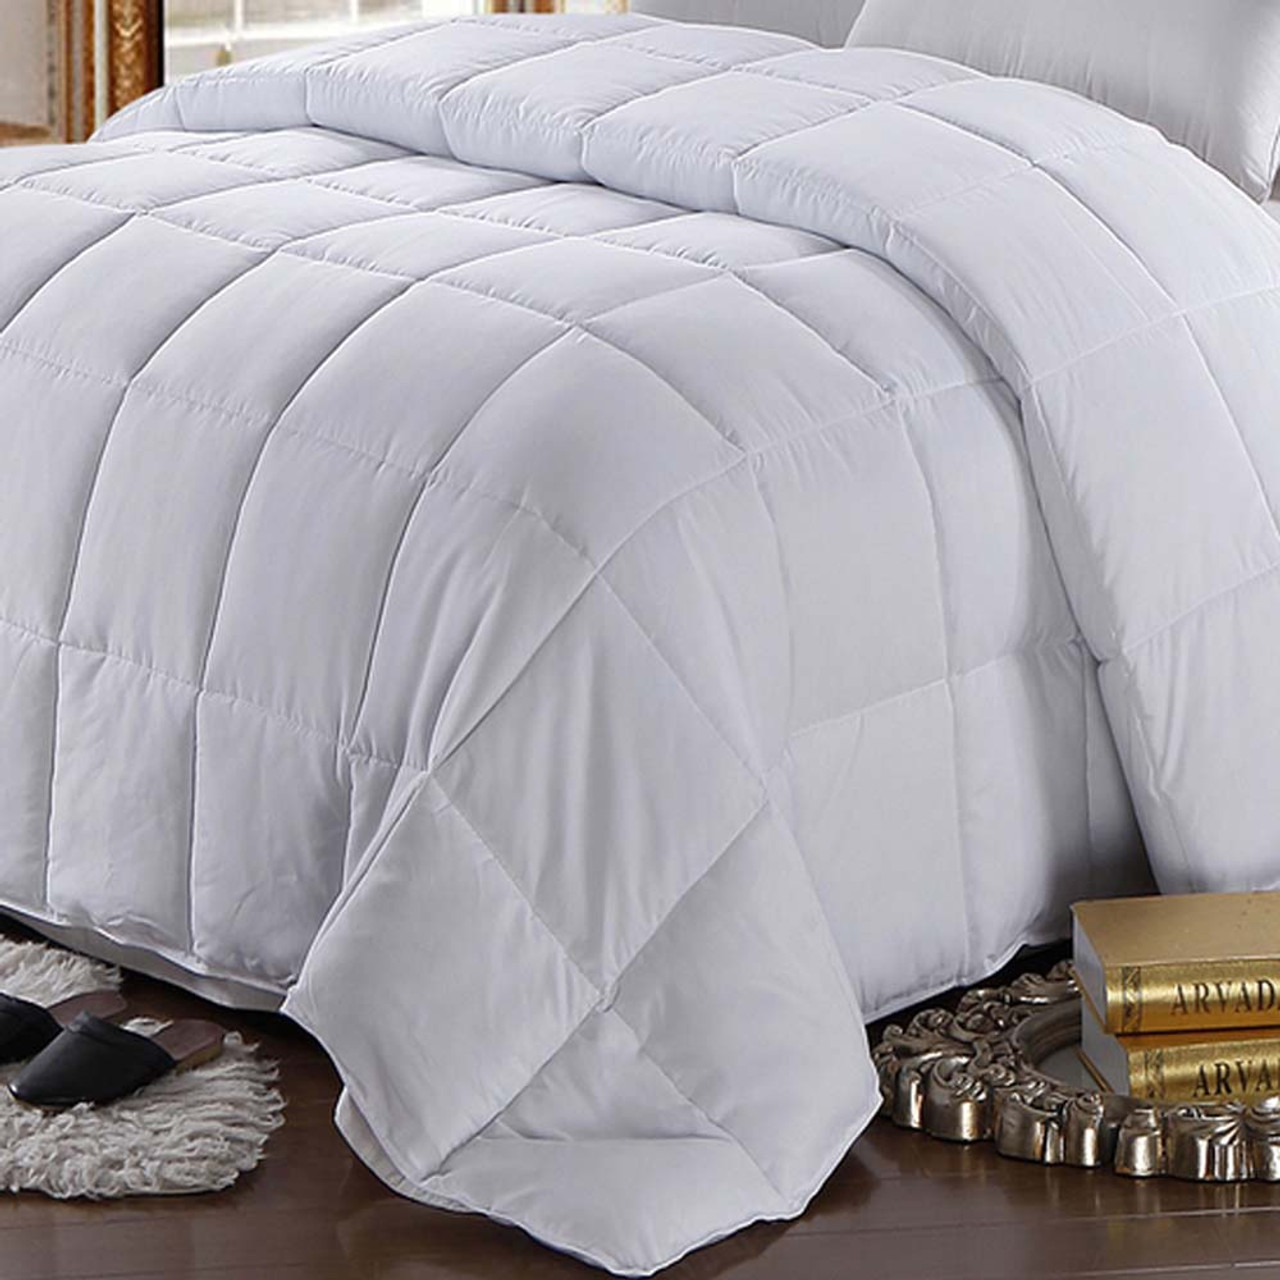 White Goose Feather-down Comforter 100% Cotton All Season Oversize : feather down quilt - Adamdwight.com